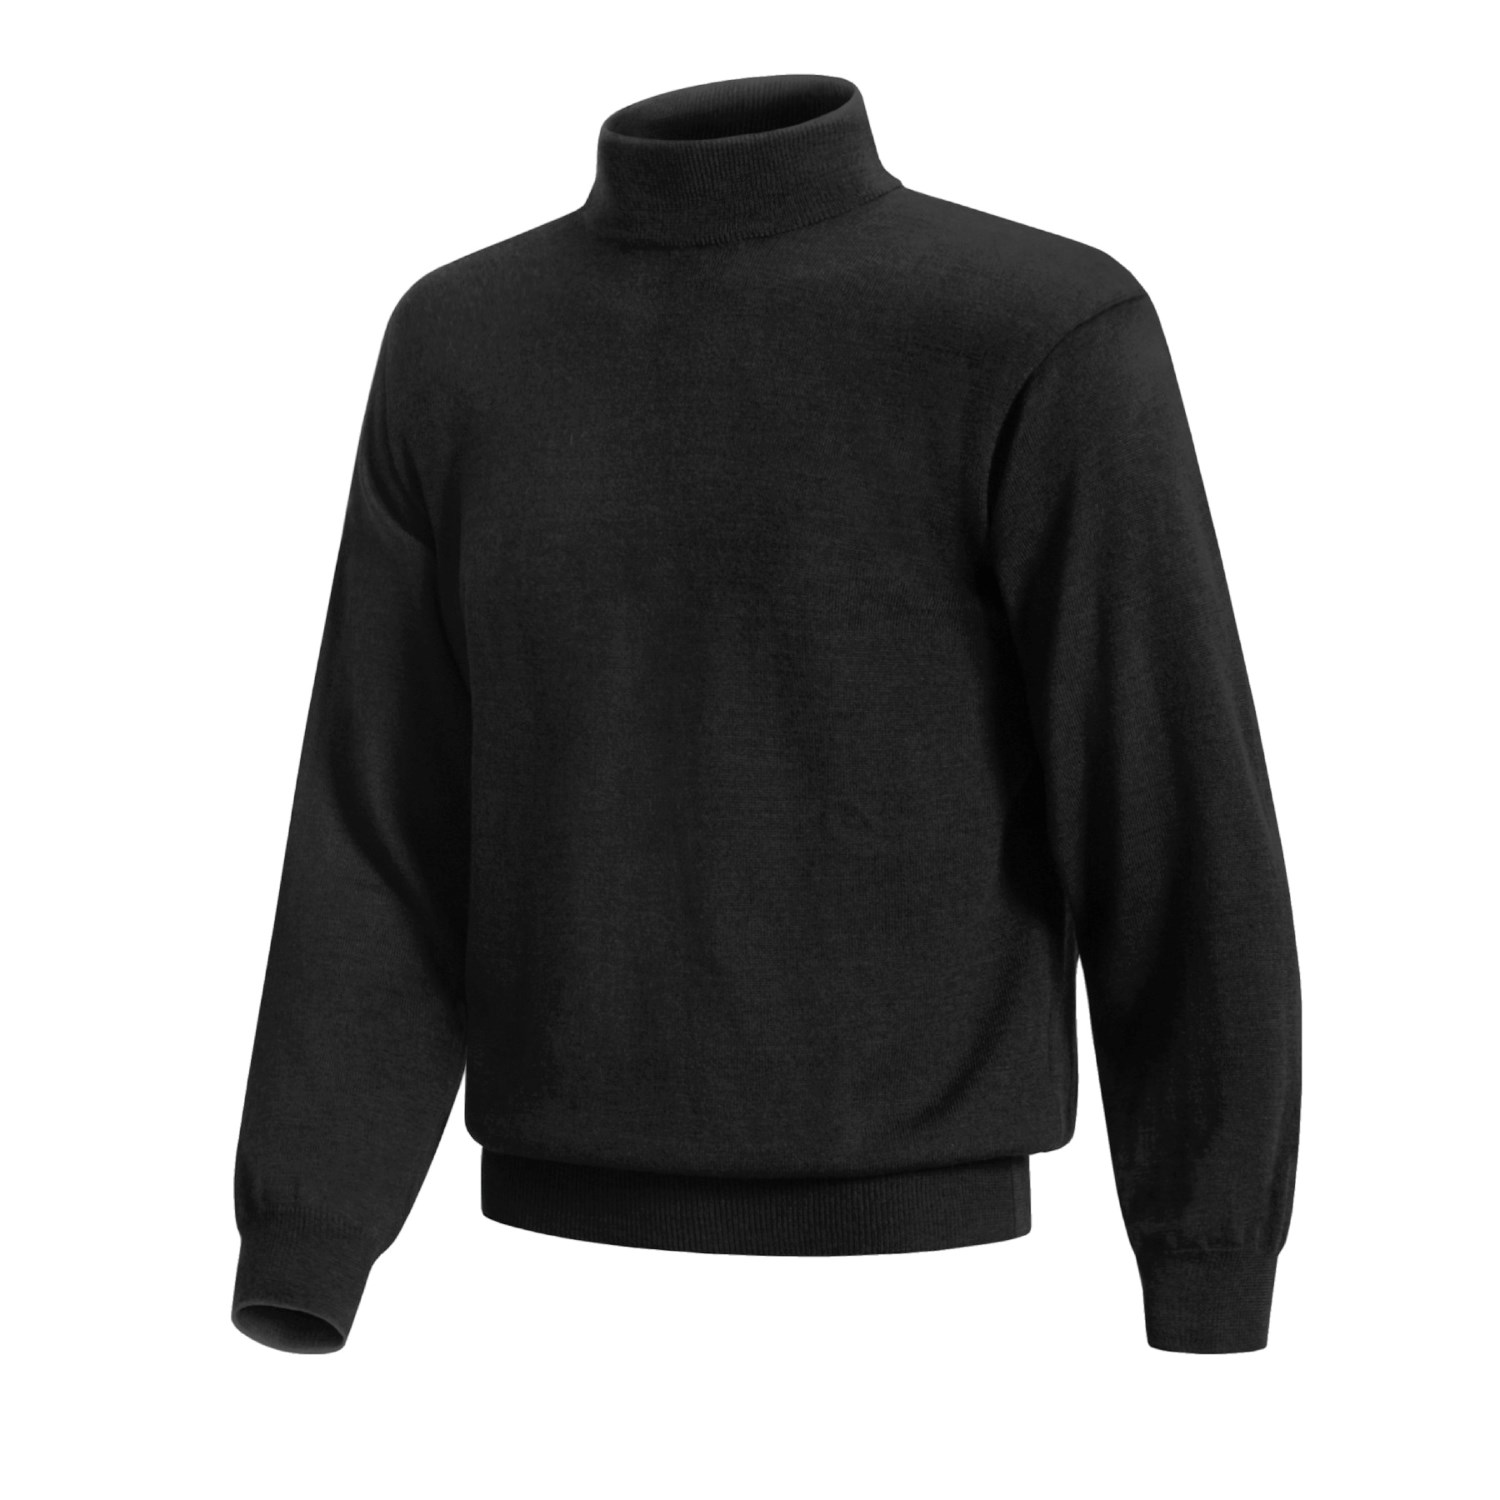 Charcoal gray long-sleeve mock turtleneck sweater with short zipper, contrasting color inside collar, and ribbed bands at hem, cuffs, and collar.